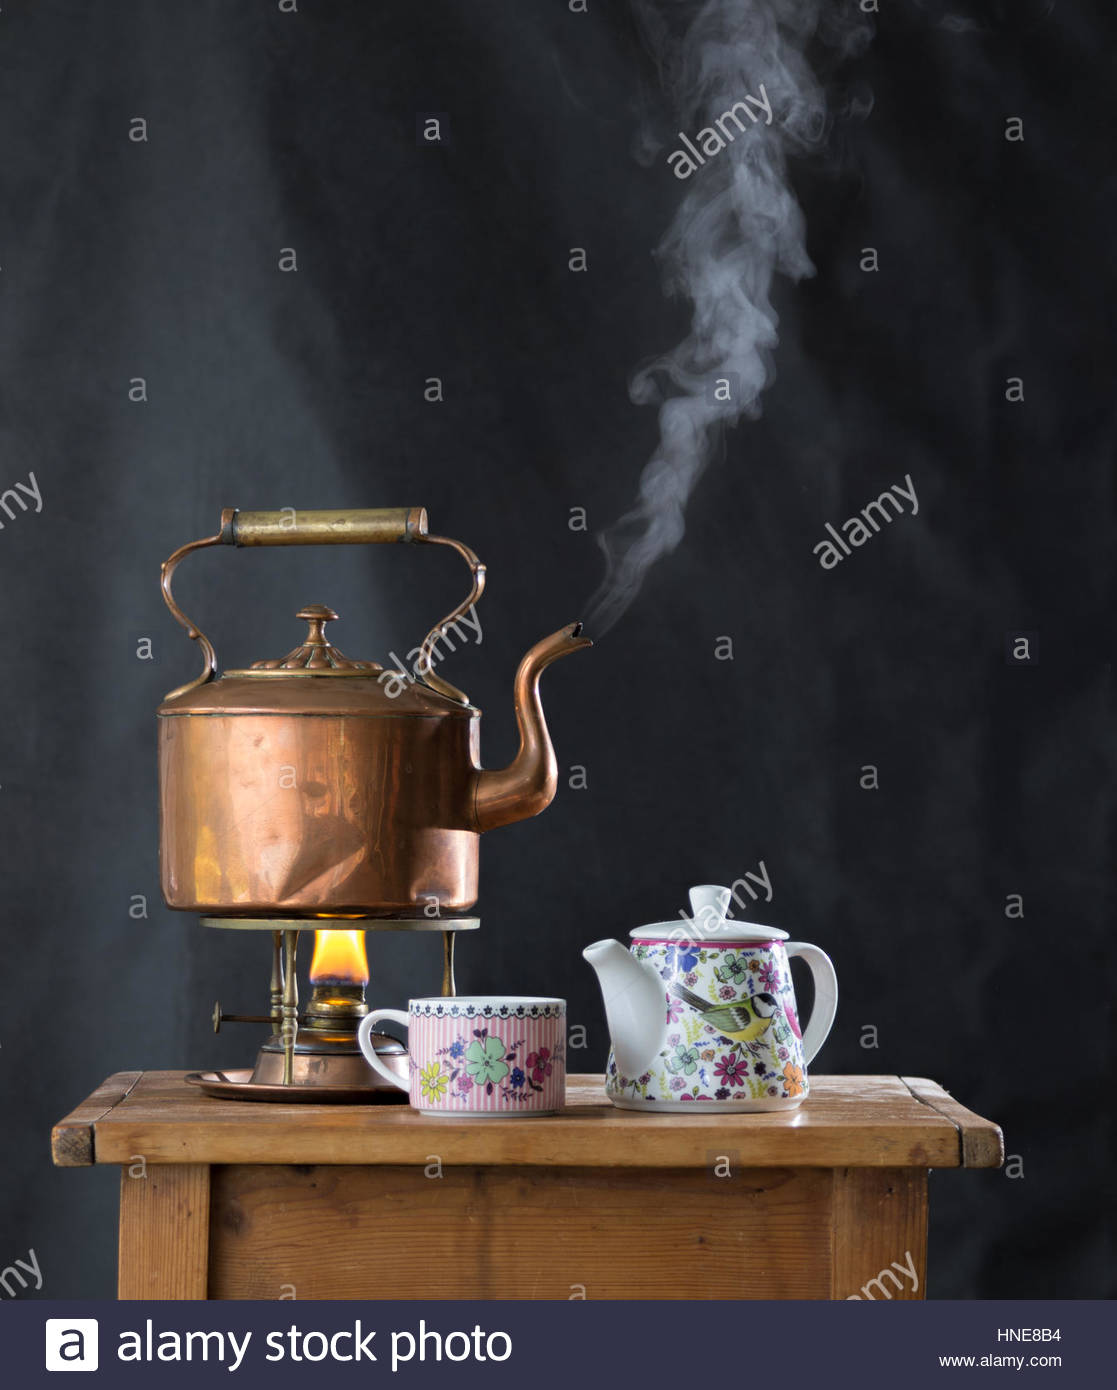 Still life with an antique boiling copper kettle, tea pot and cup - Stock Image